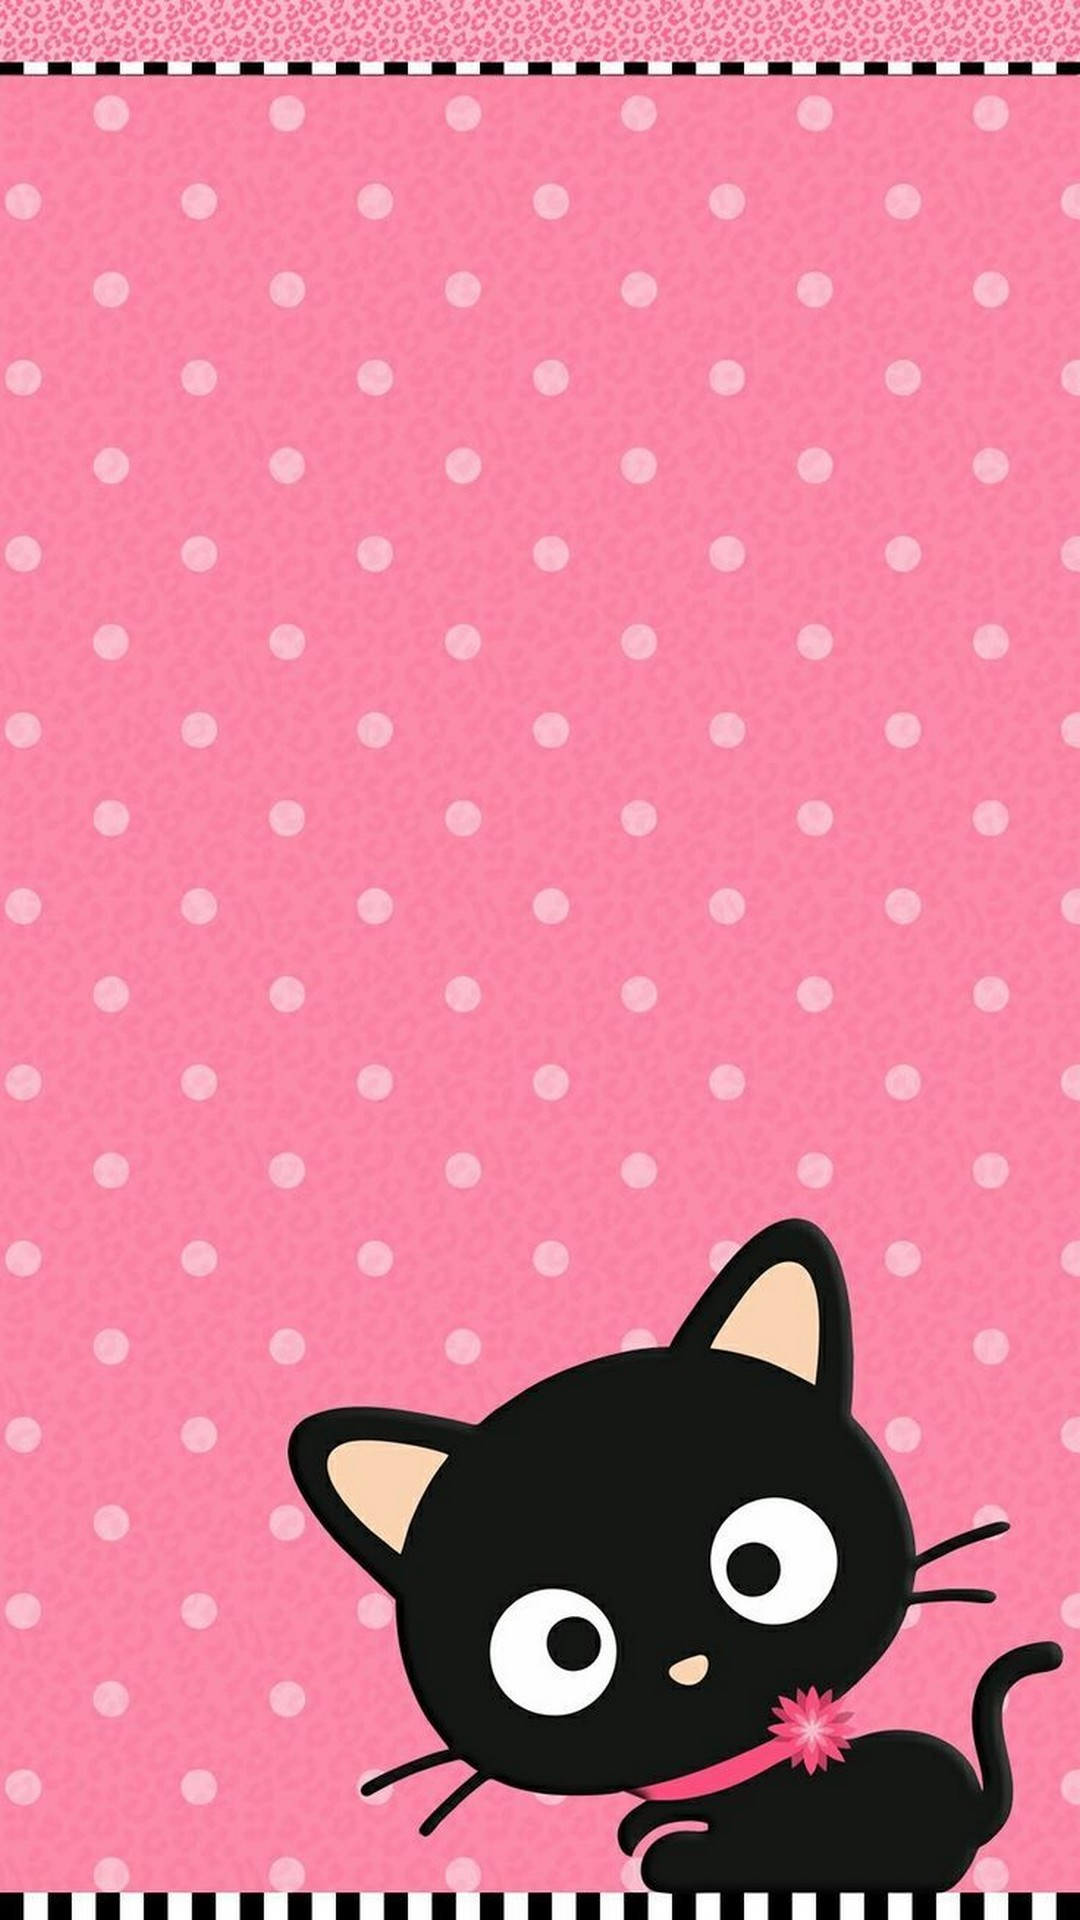 Animated Cat Pink Android Wallpaper   2021 Android Wallpapers 1080x1920